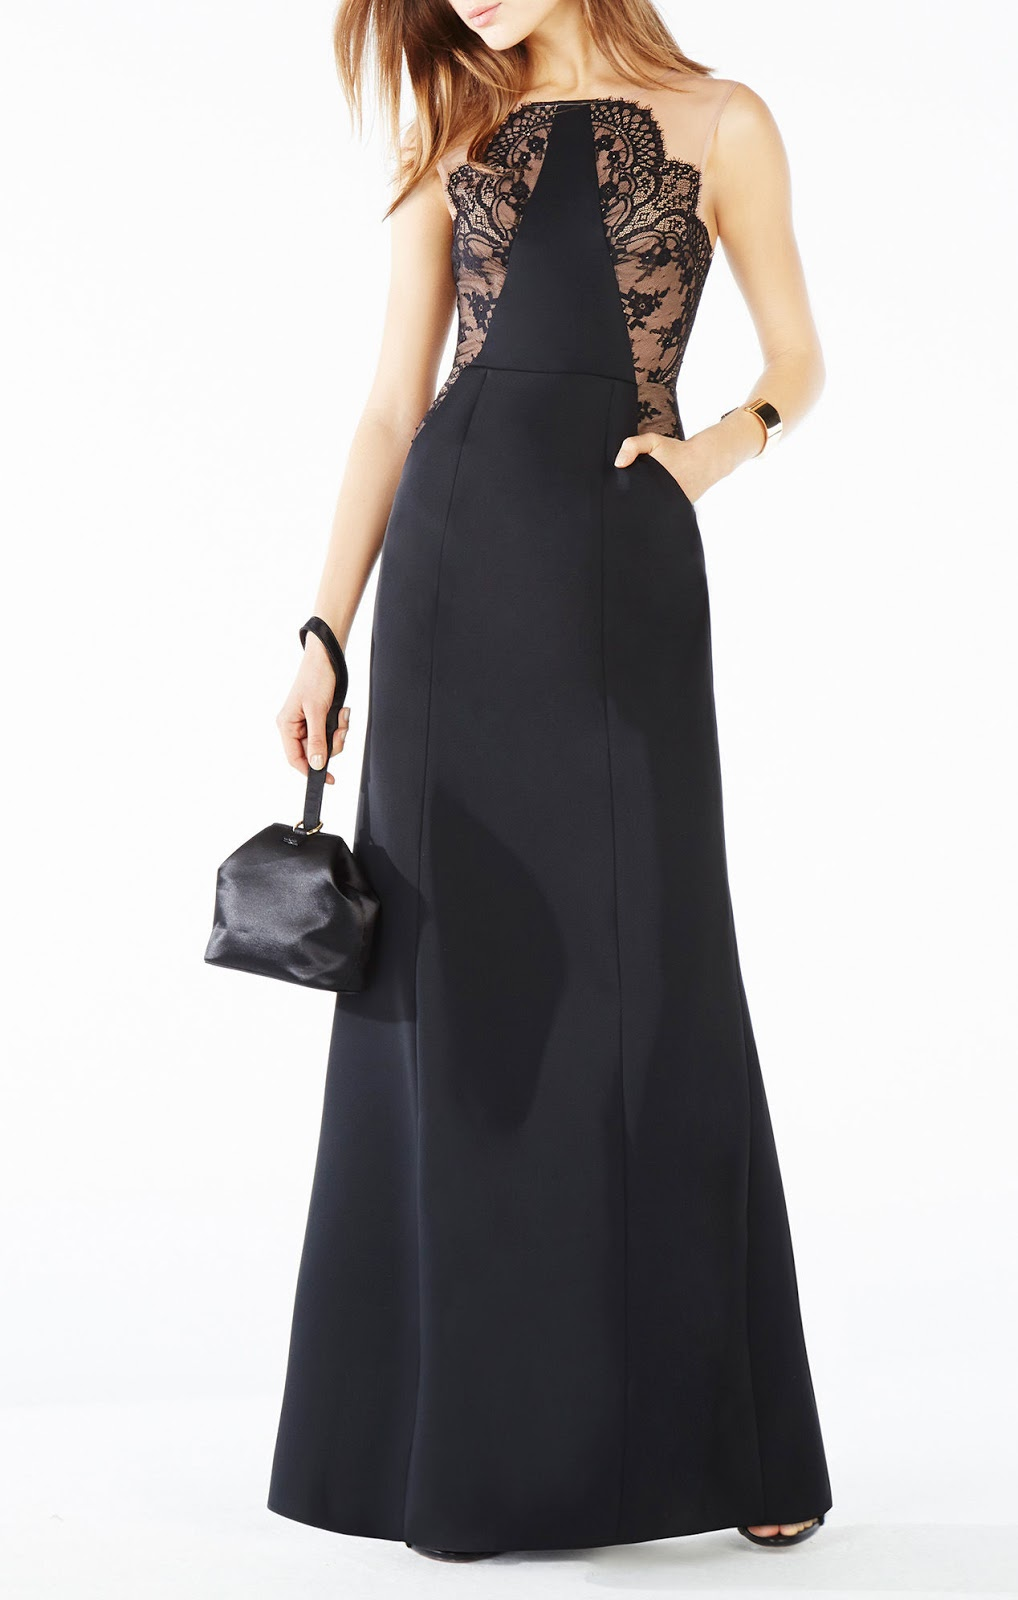 2016 Sexy Prom Gown 2016 Bcbg Stylish New Evening Party Gown